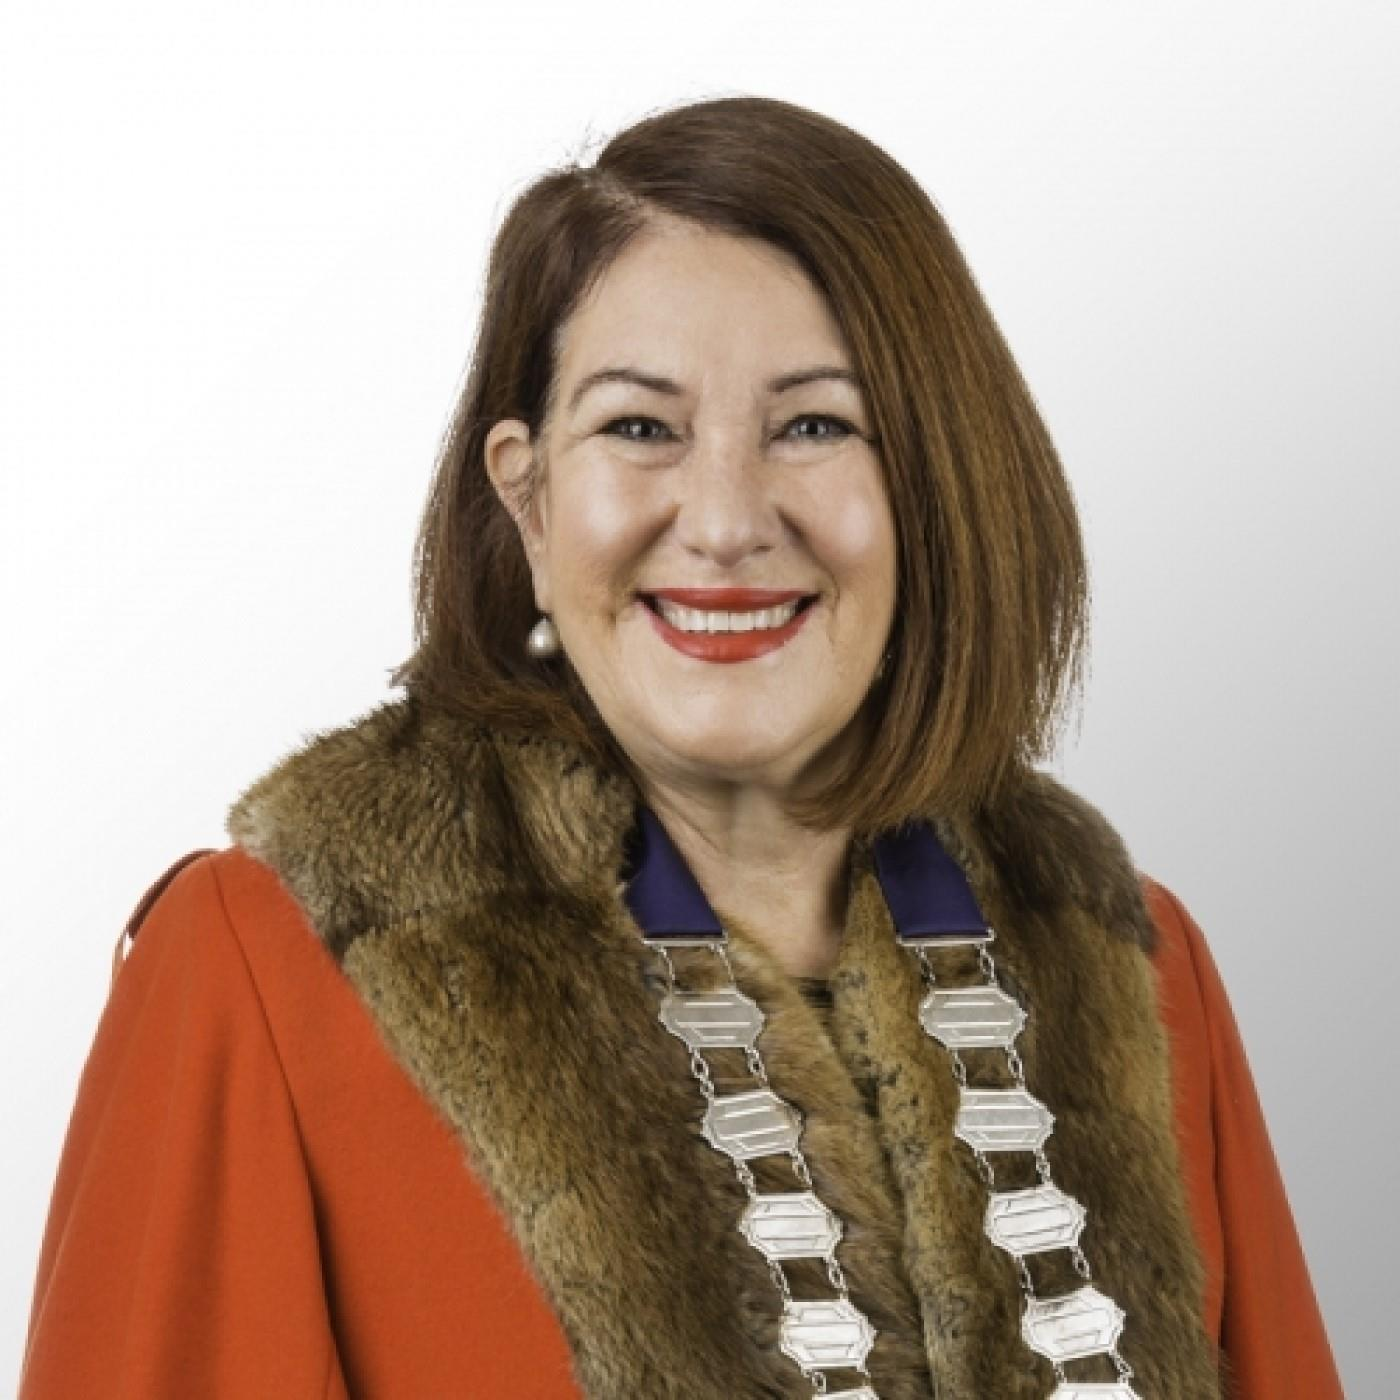 Mayoral Voices - Hastings - Sandra Hazelhurst